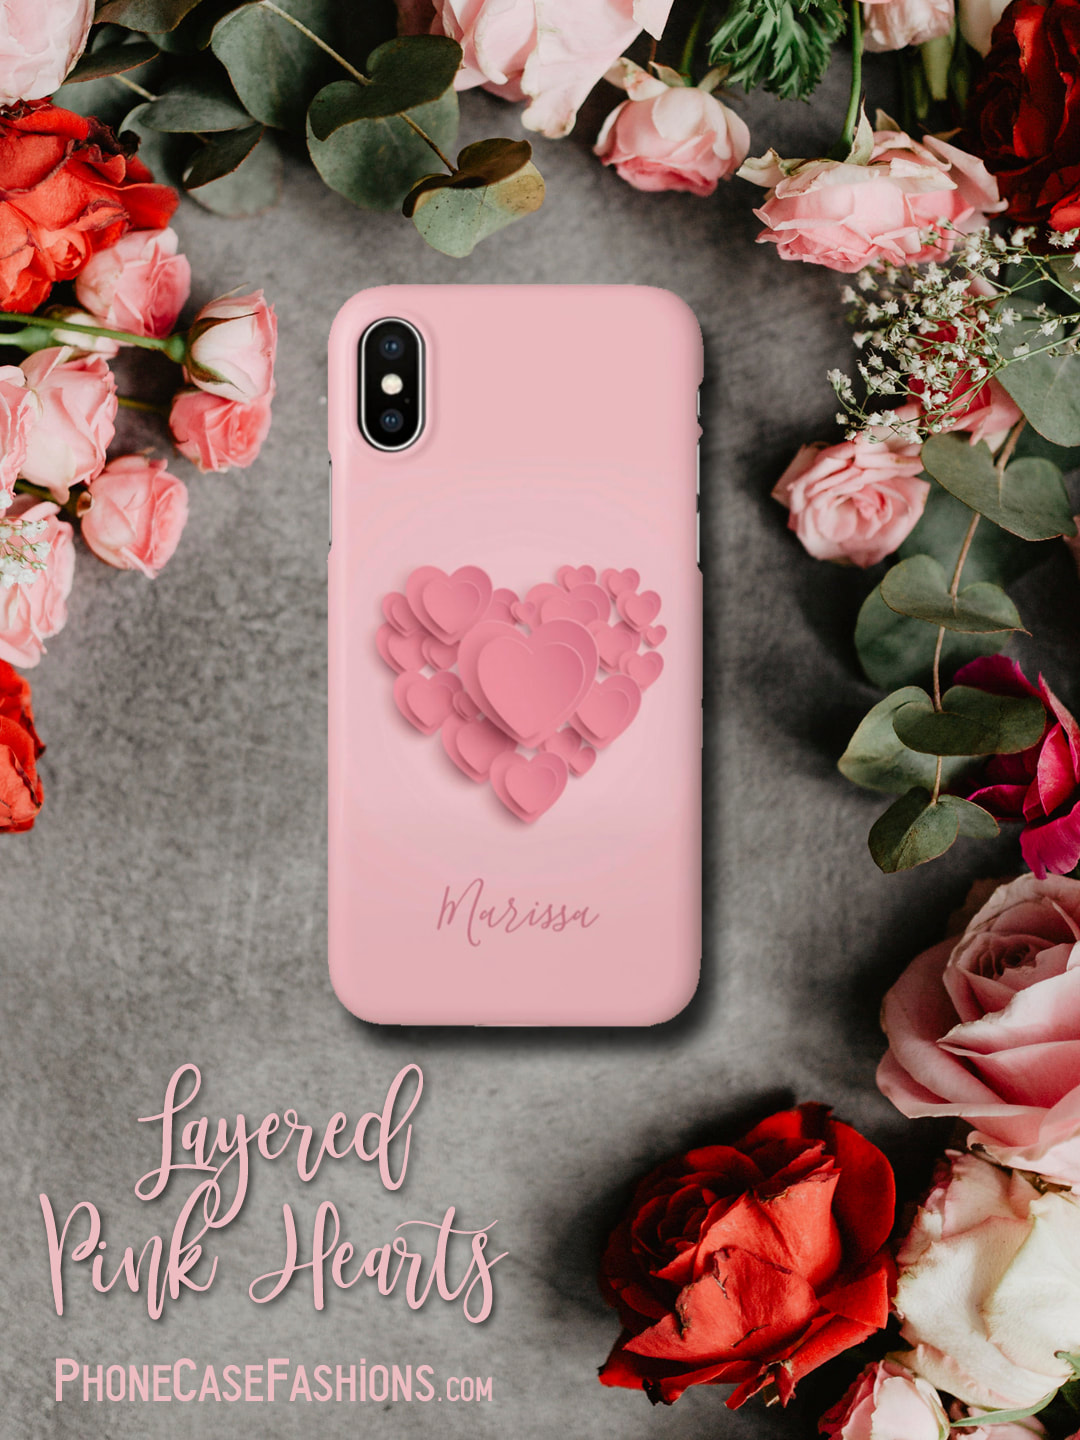 Layered bubble gum pink hearts on a baby pink background, a perfect cell phone case for the one you love, for Valentine's Day, Mother's Day, the new bride-to-be, or just because.